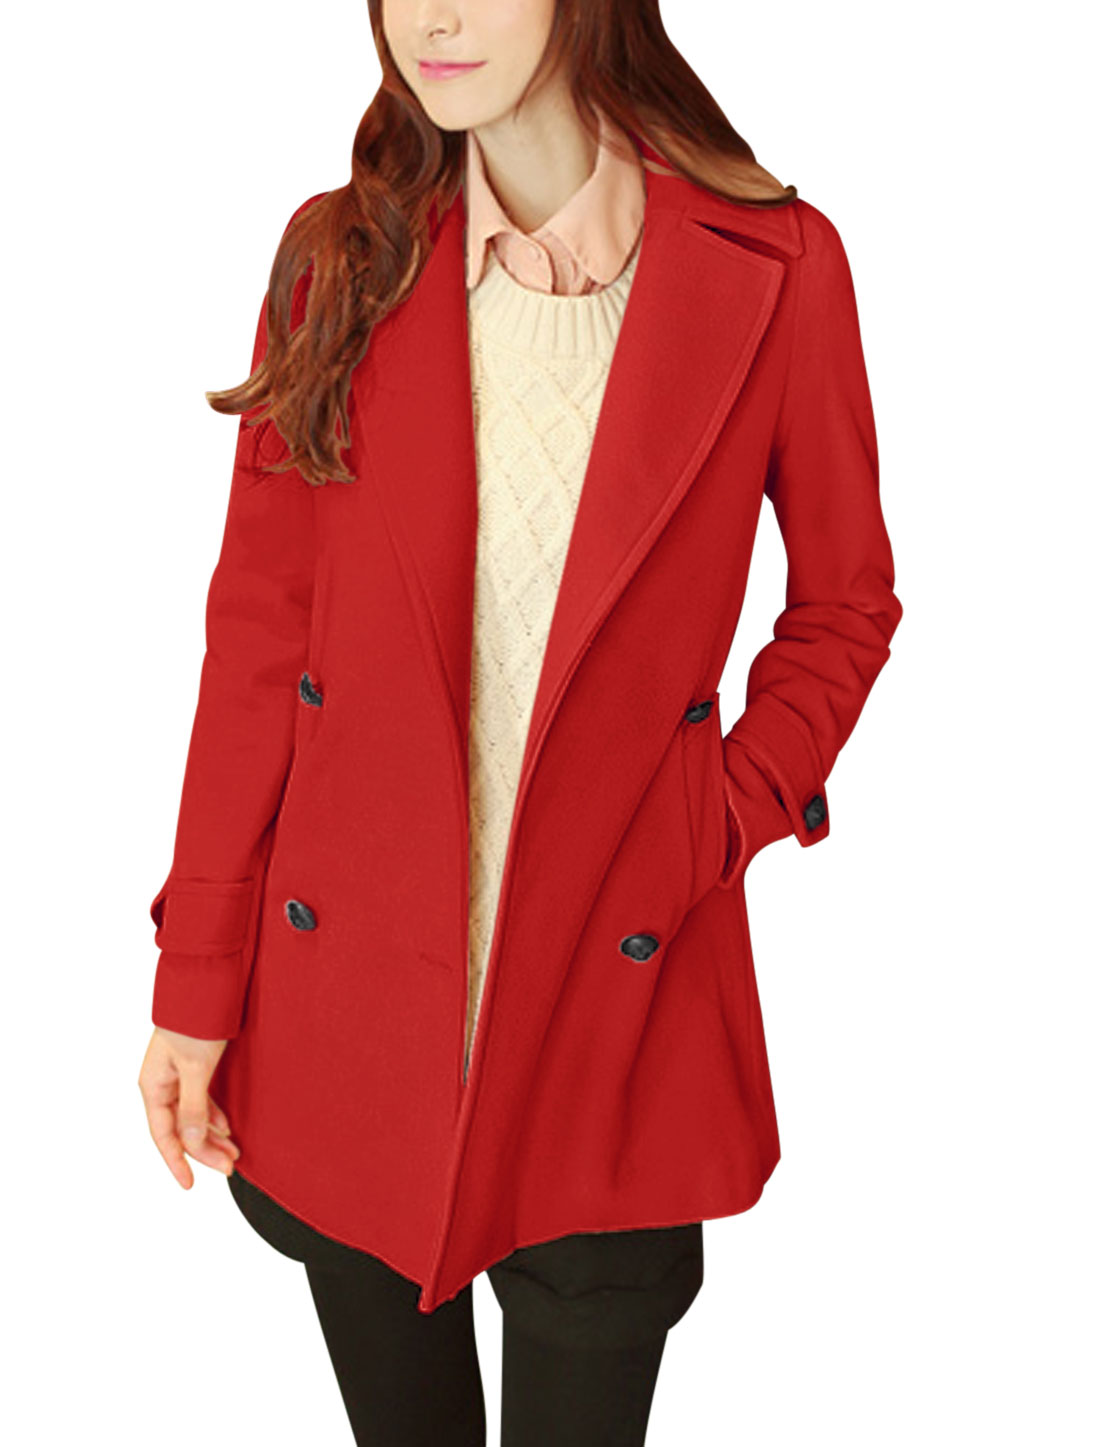 Women Notched Lapel Two Front Pockets Casual Worsted Coat Red M